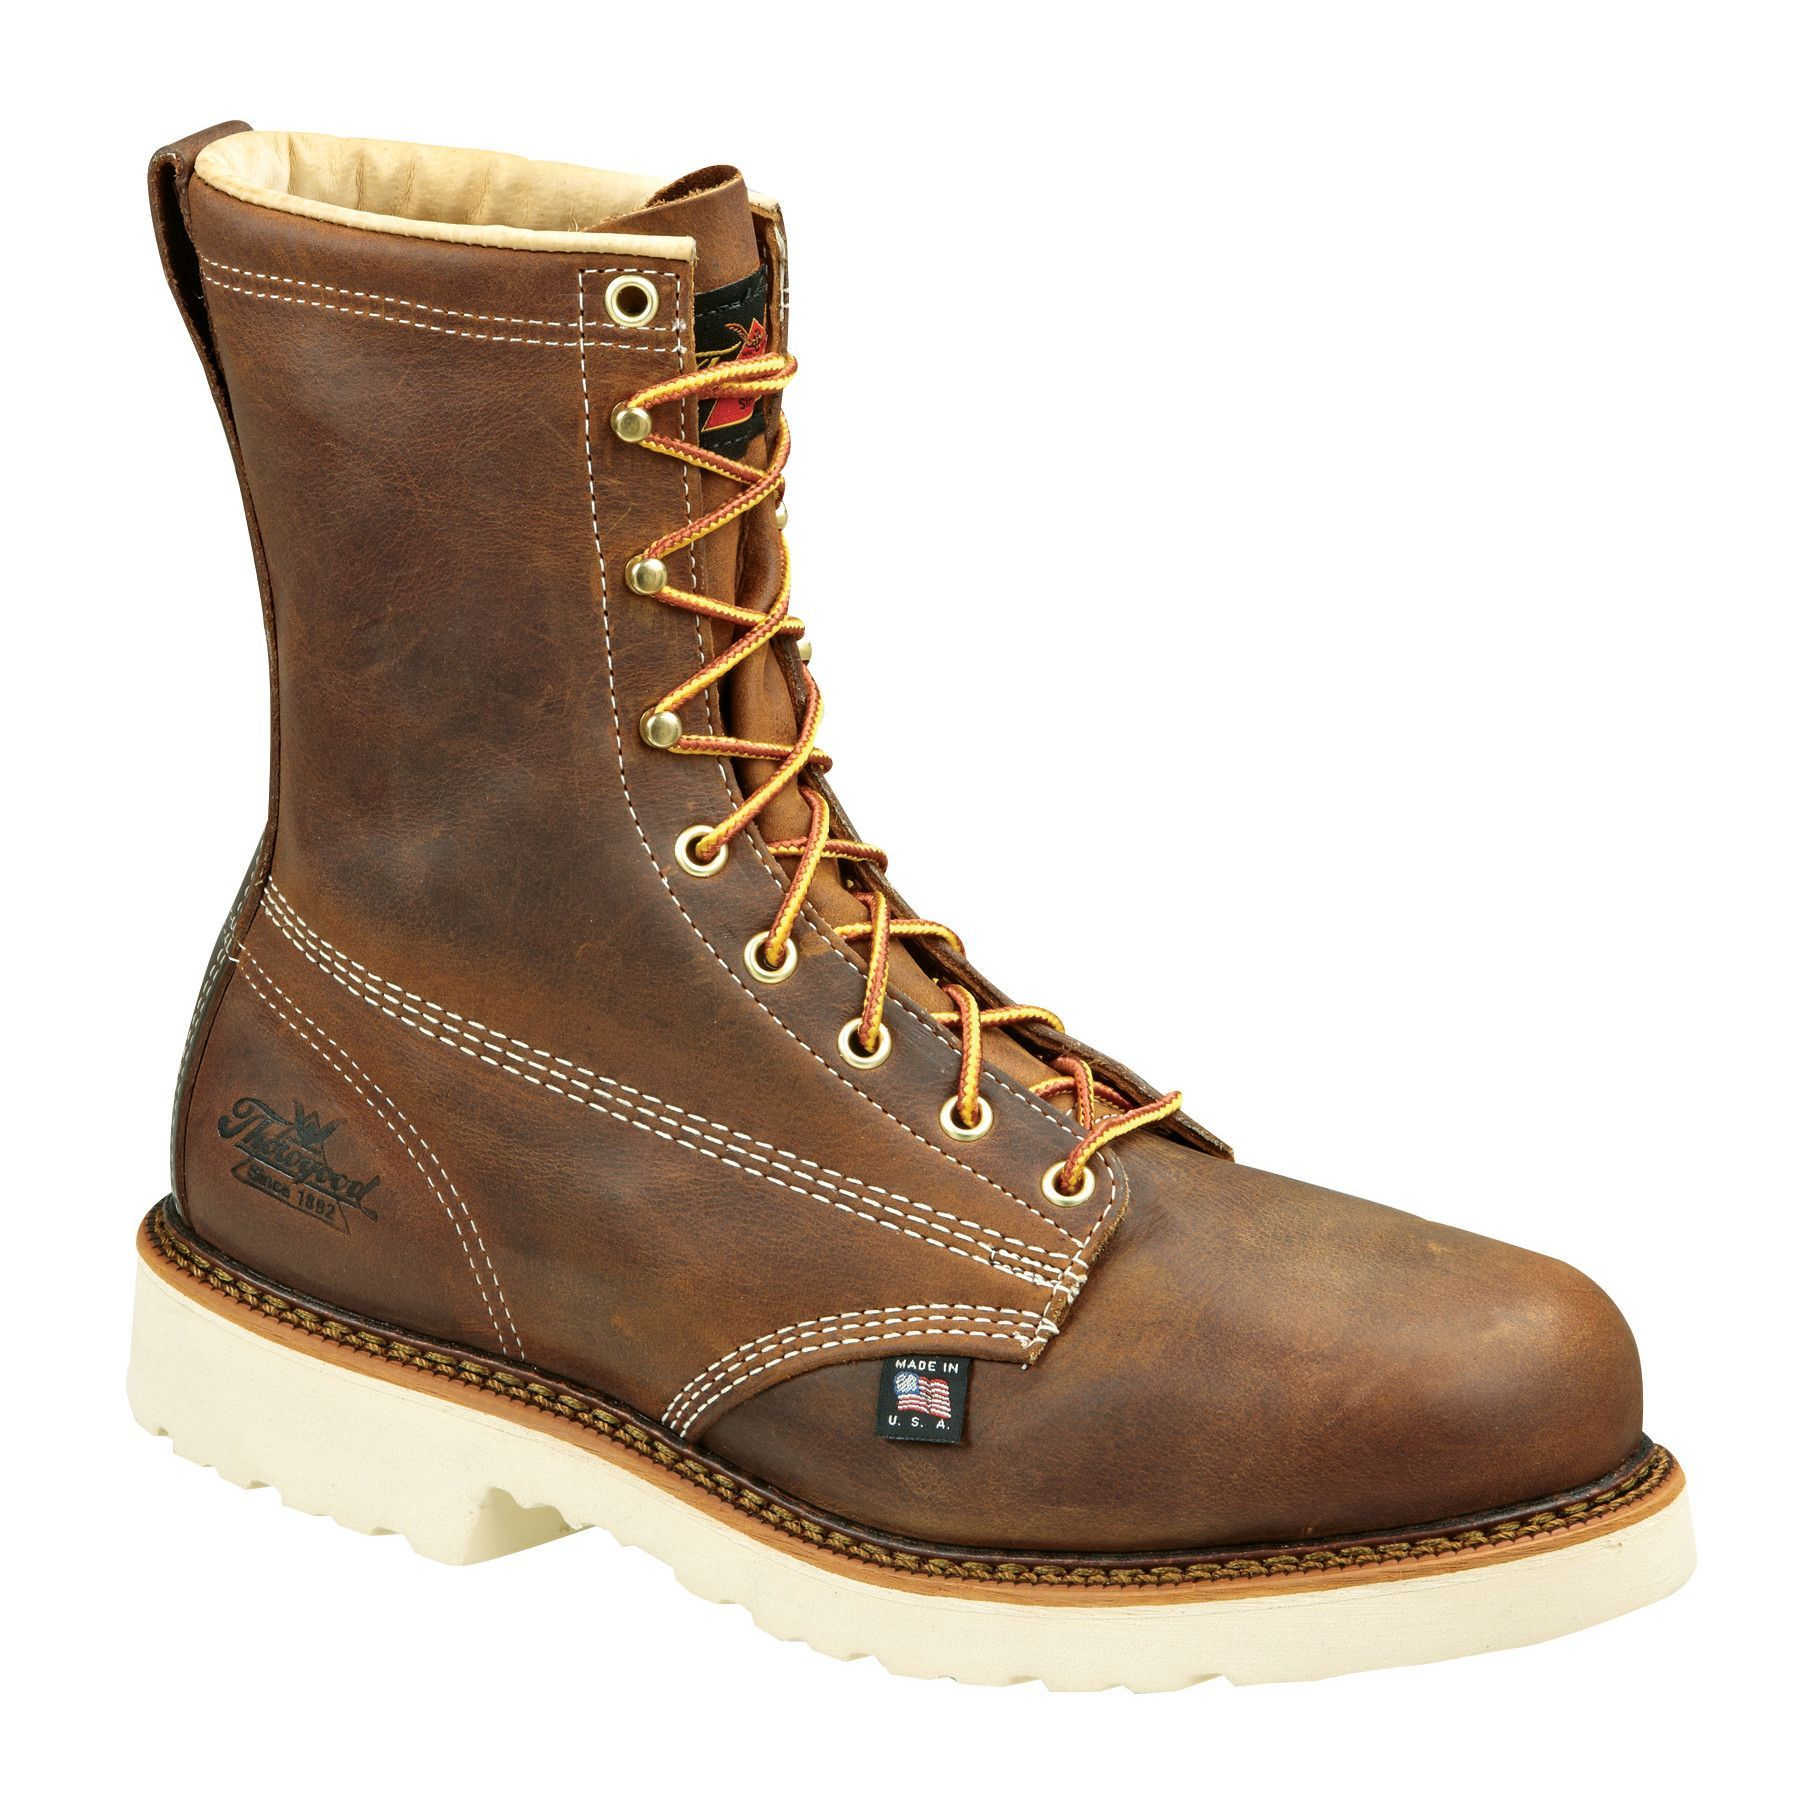 eb334dddd42 Thorogood Mens Heritage Brown Leather Boots 8in Plain Safety Toe in ...